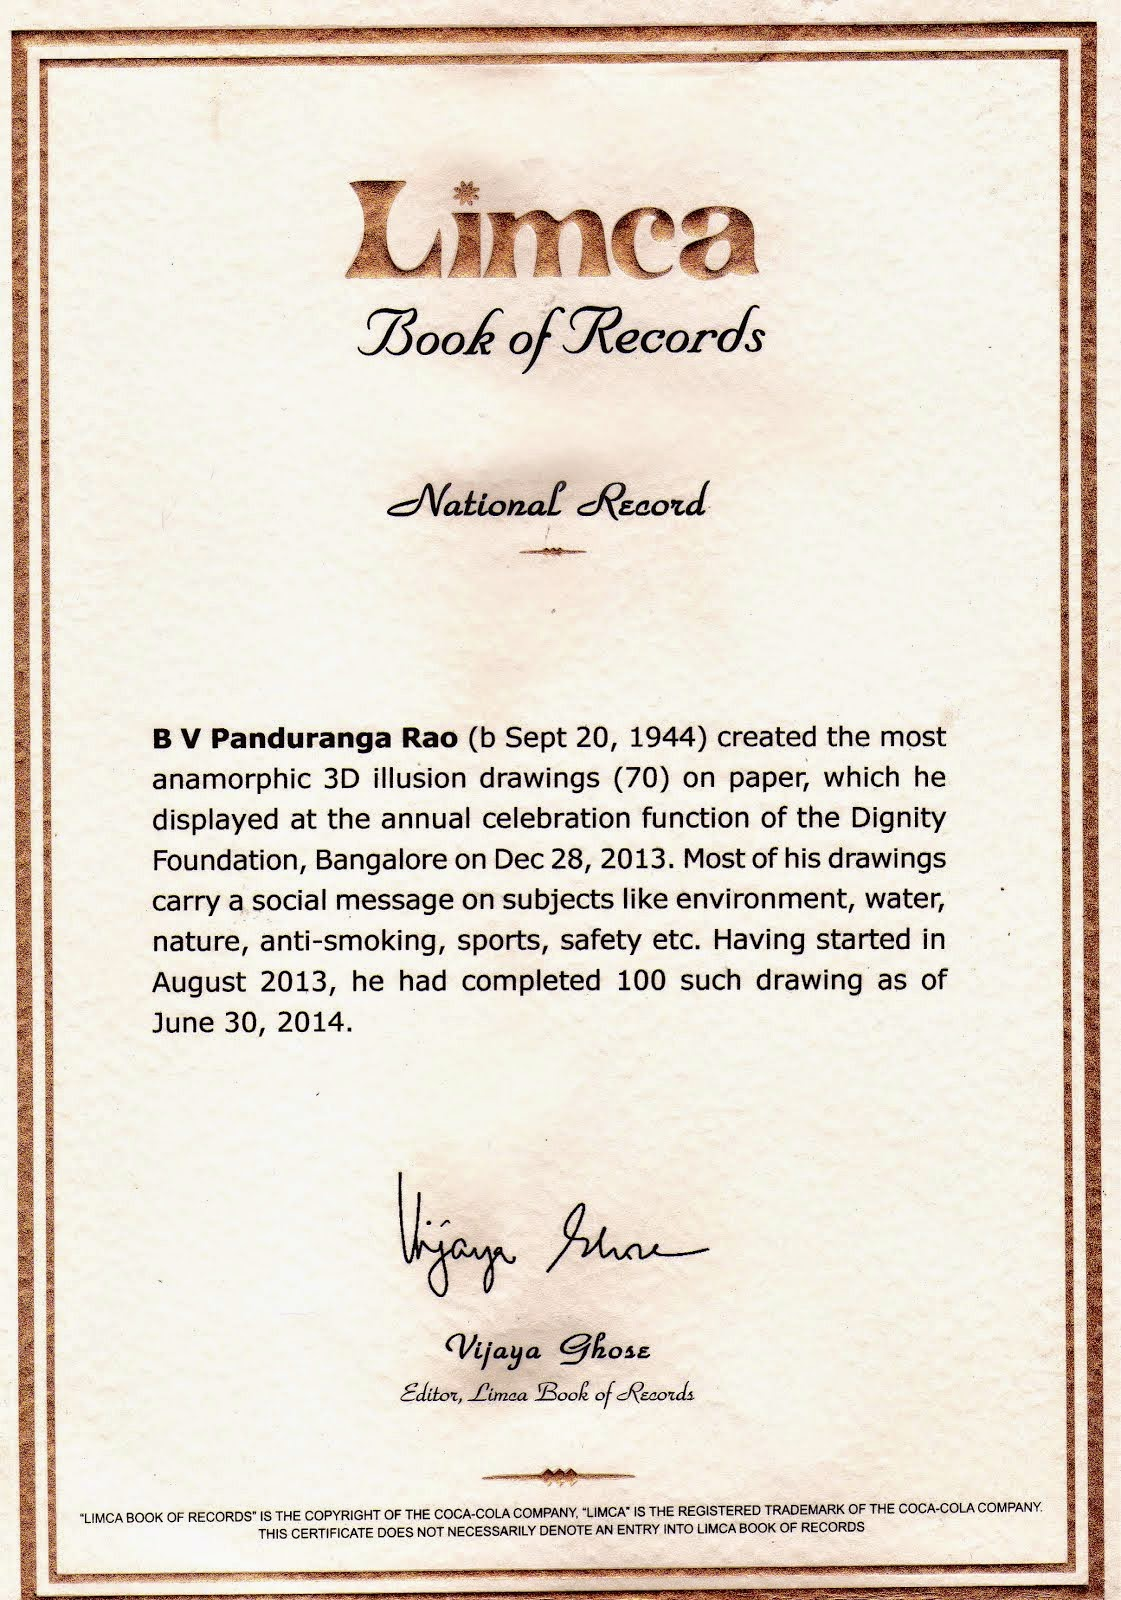 In Limca Book of Records